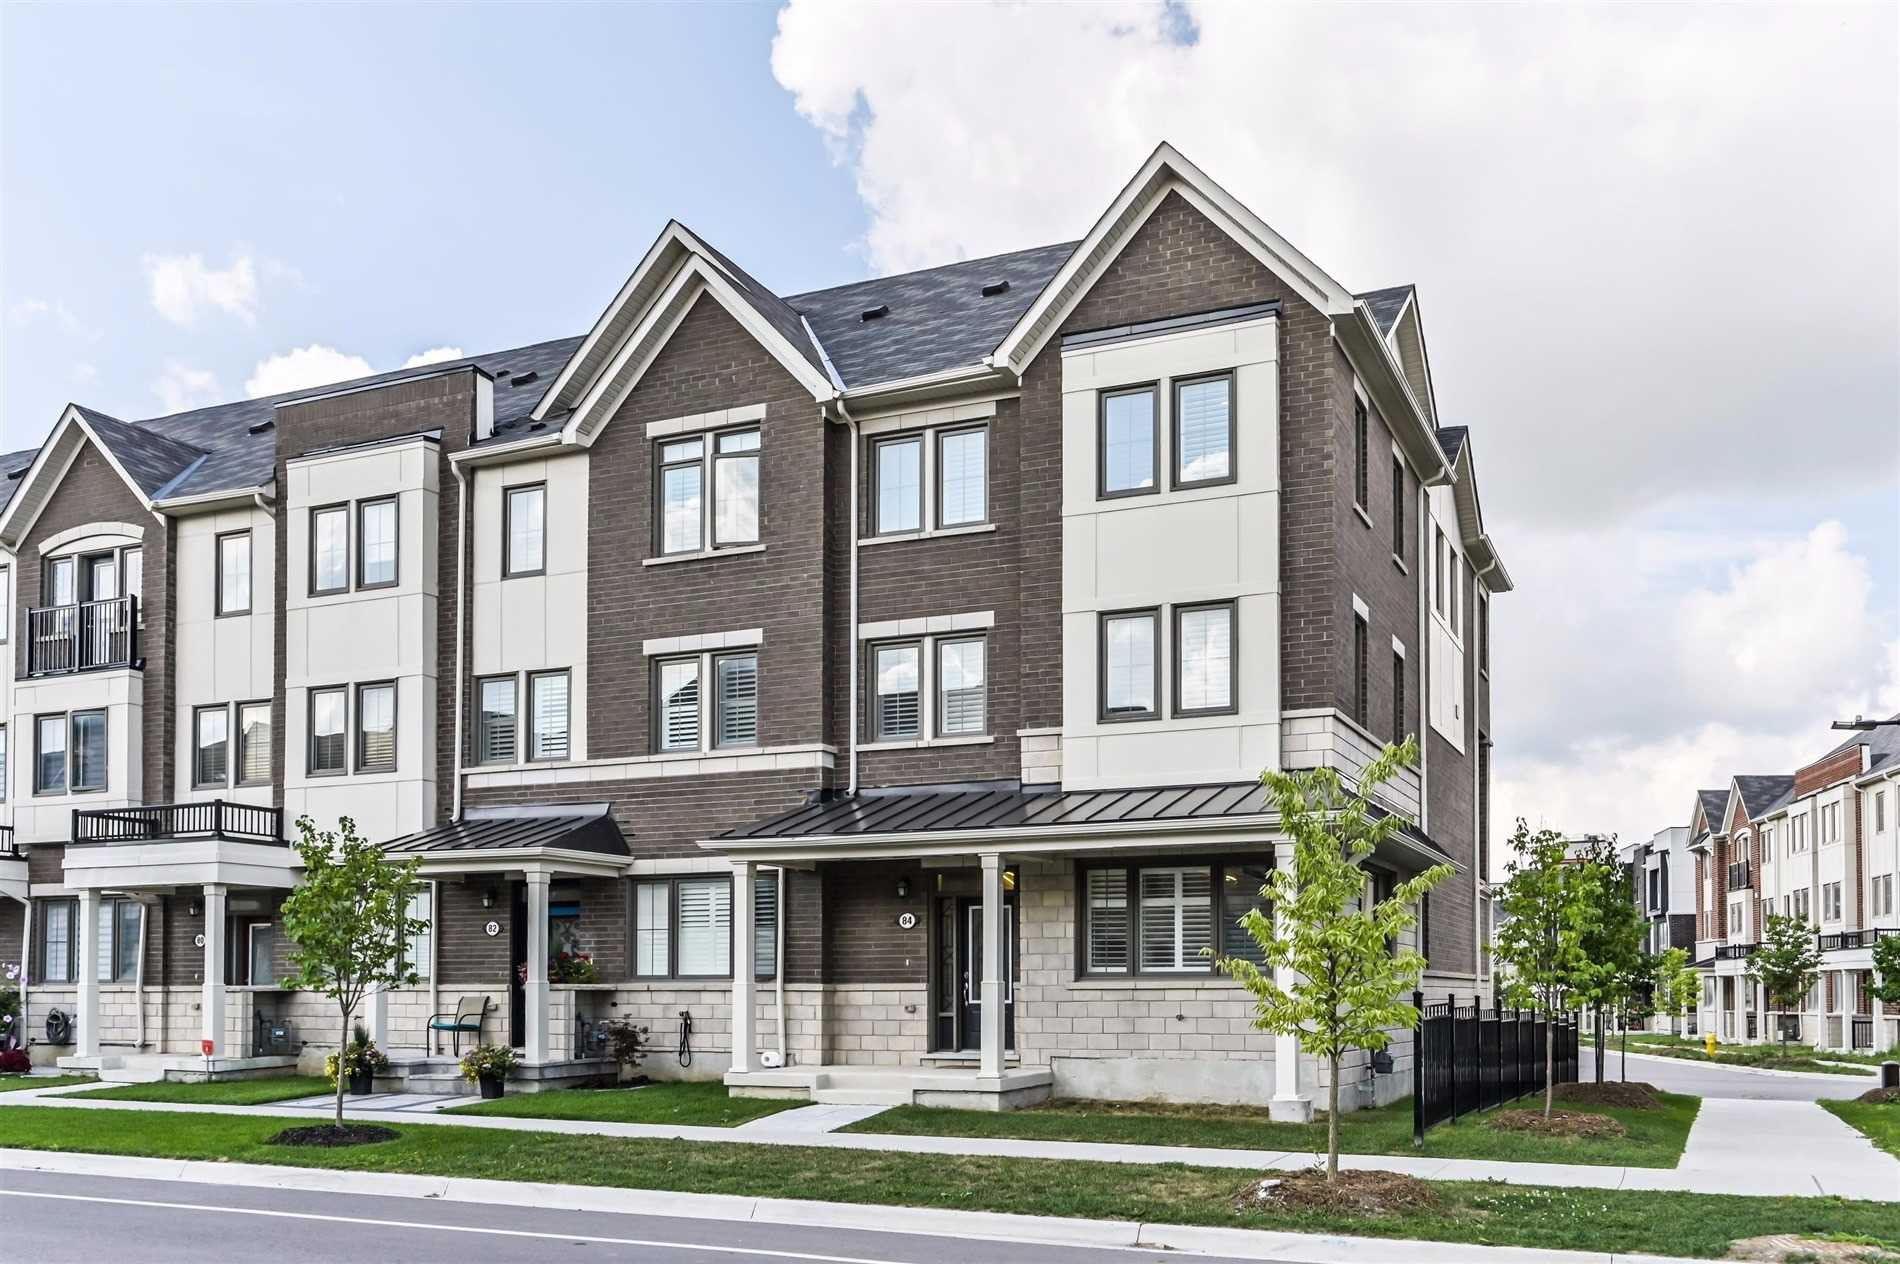 Main Photo: 84 Cornell Centre Blvd in Markham: Freehold for sale : MLS®# N4896458